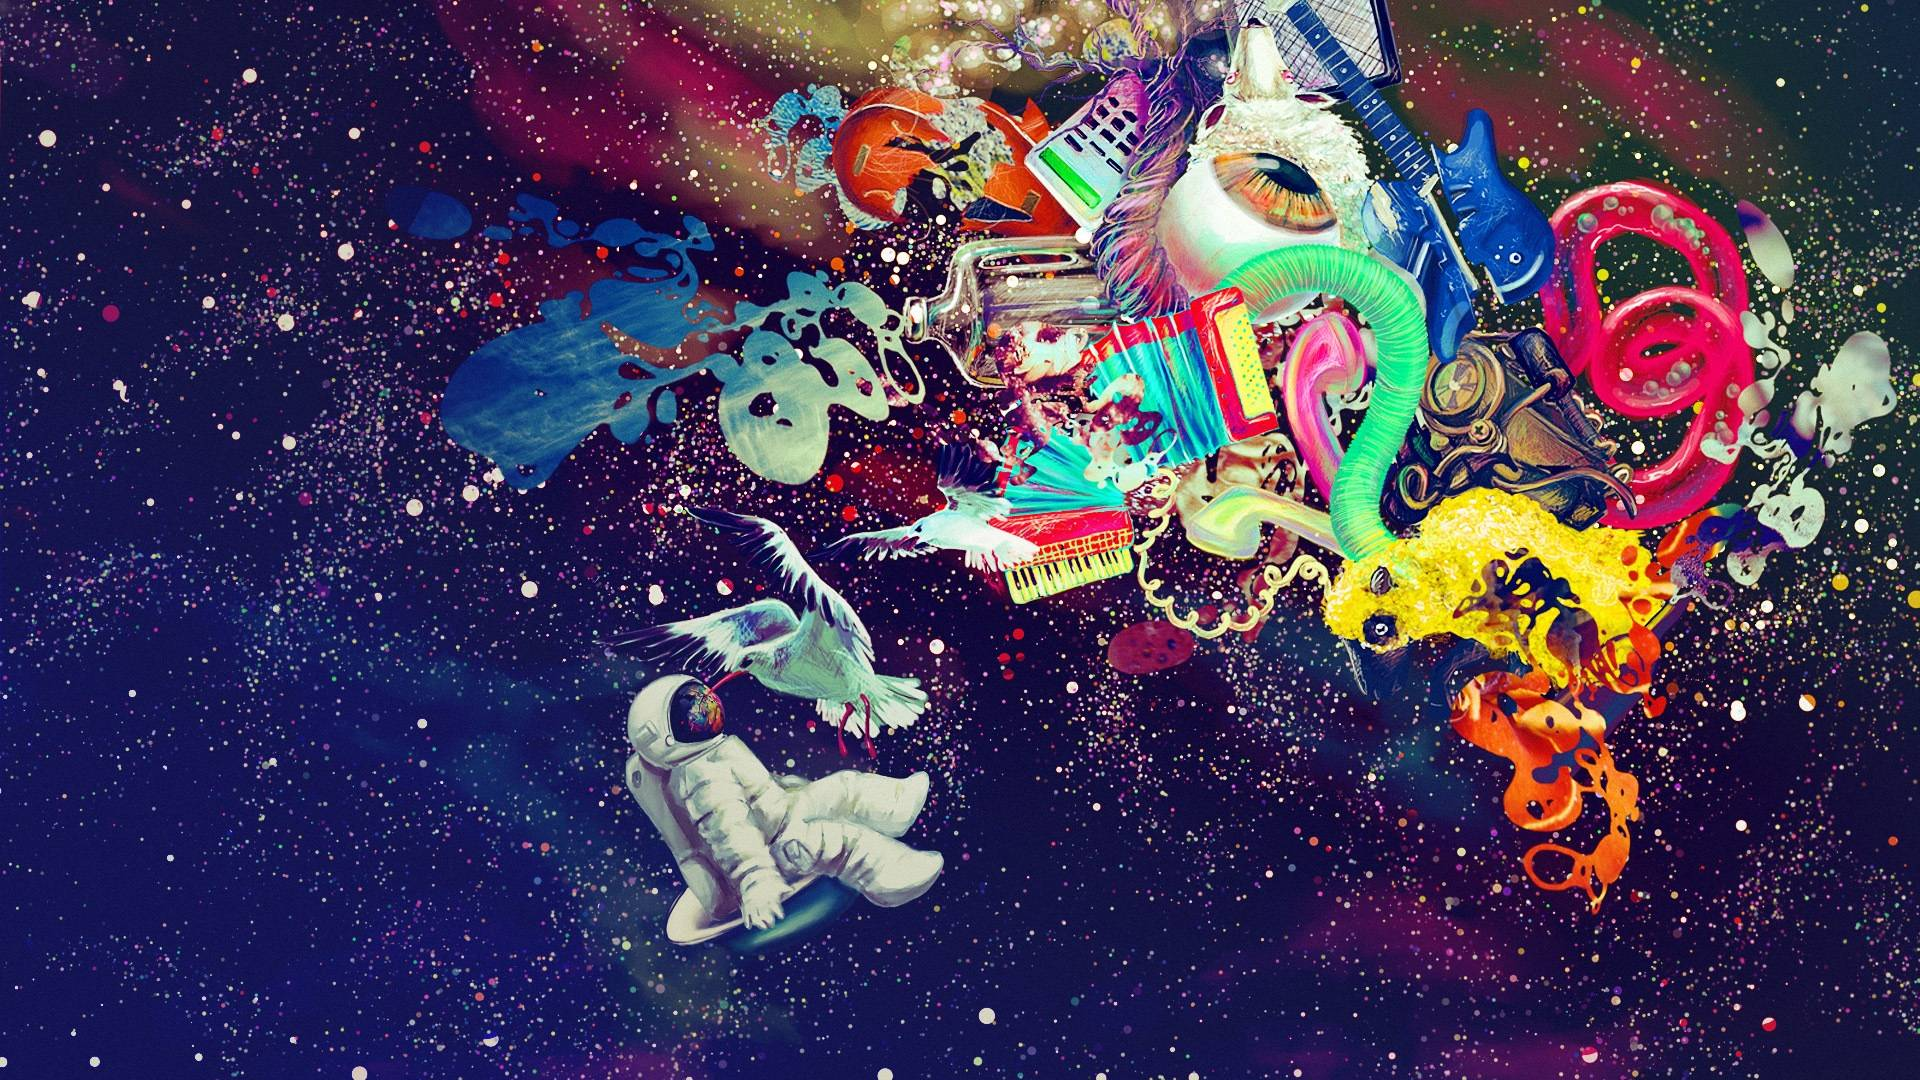 Cool Wallpaper Macbook Psychedelic - Psychedelic-Wallpaper-Download  Photograph_6911100.jpg